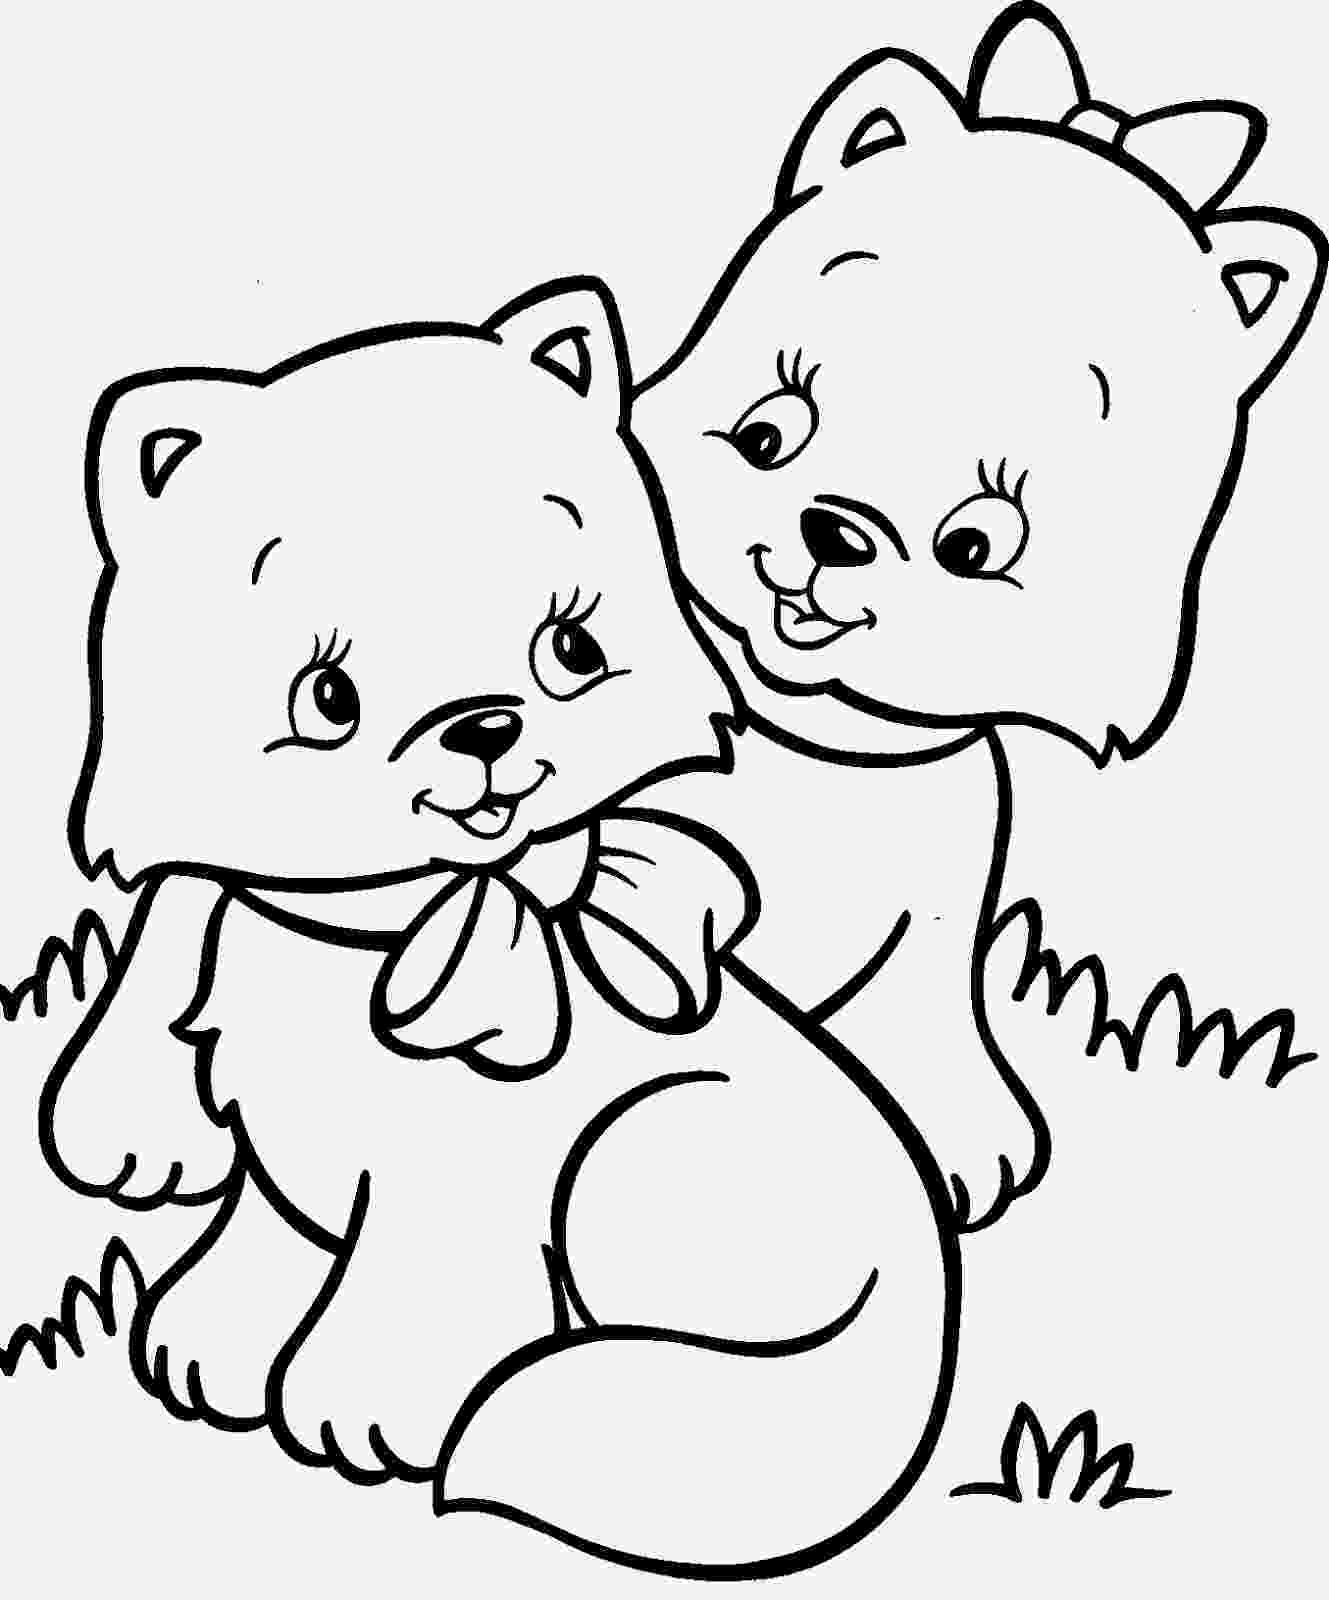 coloring cat pages navishta sketch sweet cute angle cats cat coloring pages